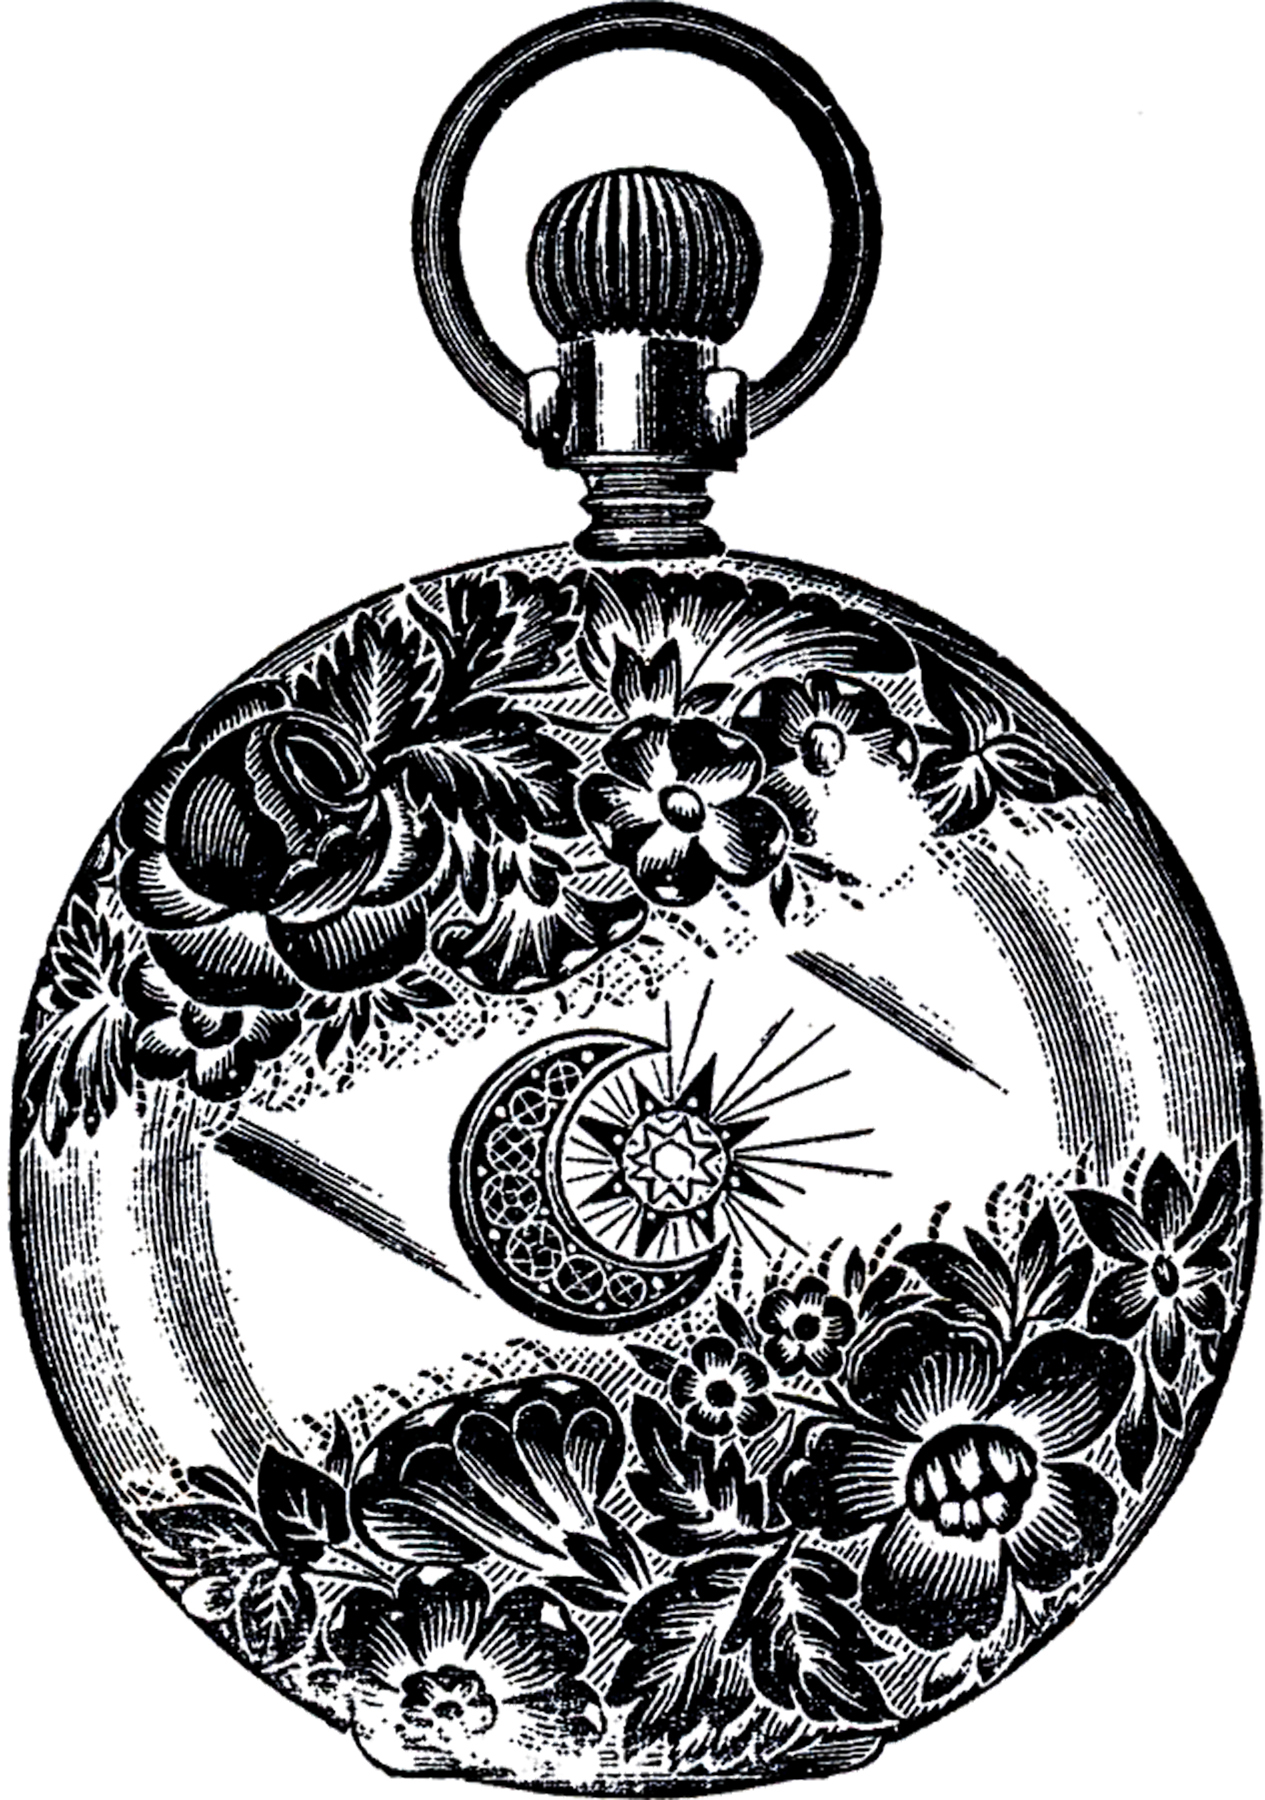 Public Domain Pocket Watch Image